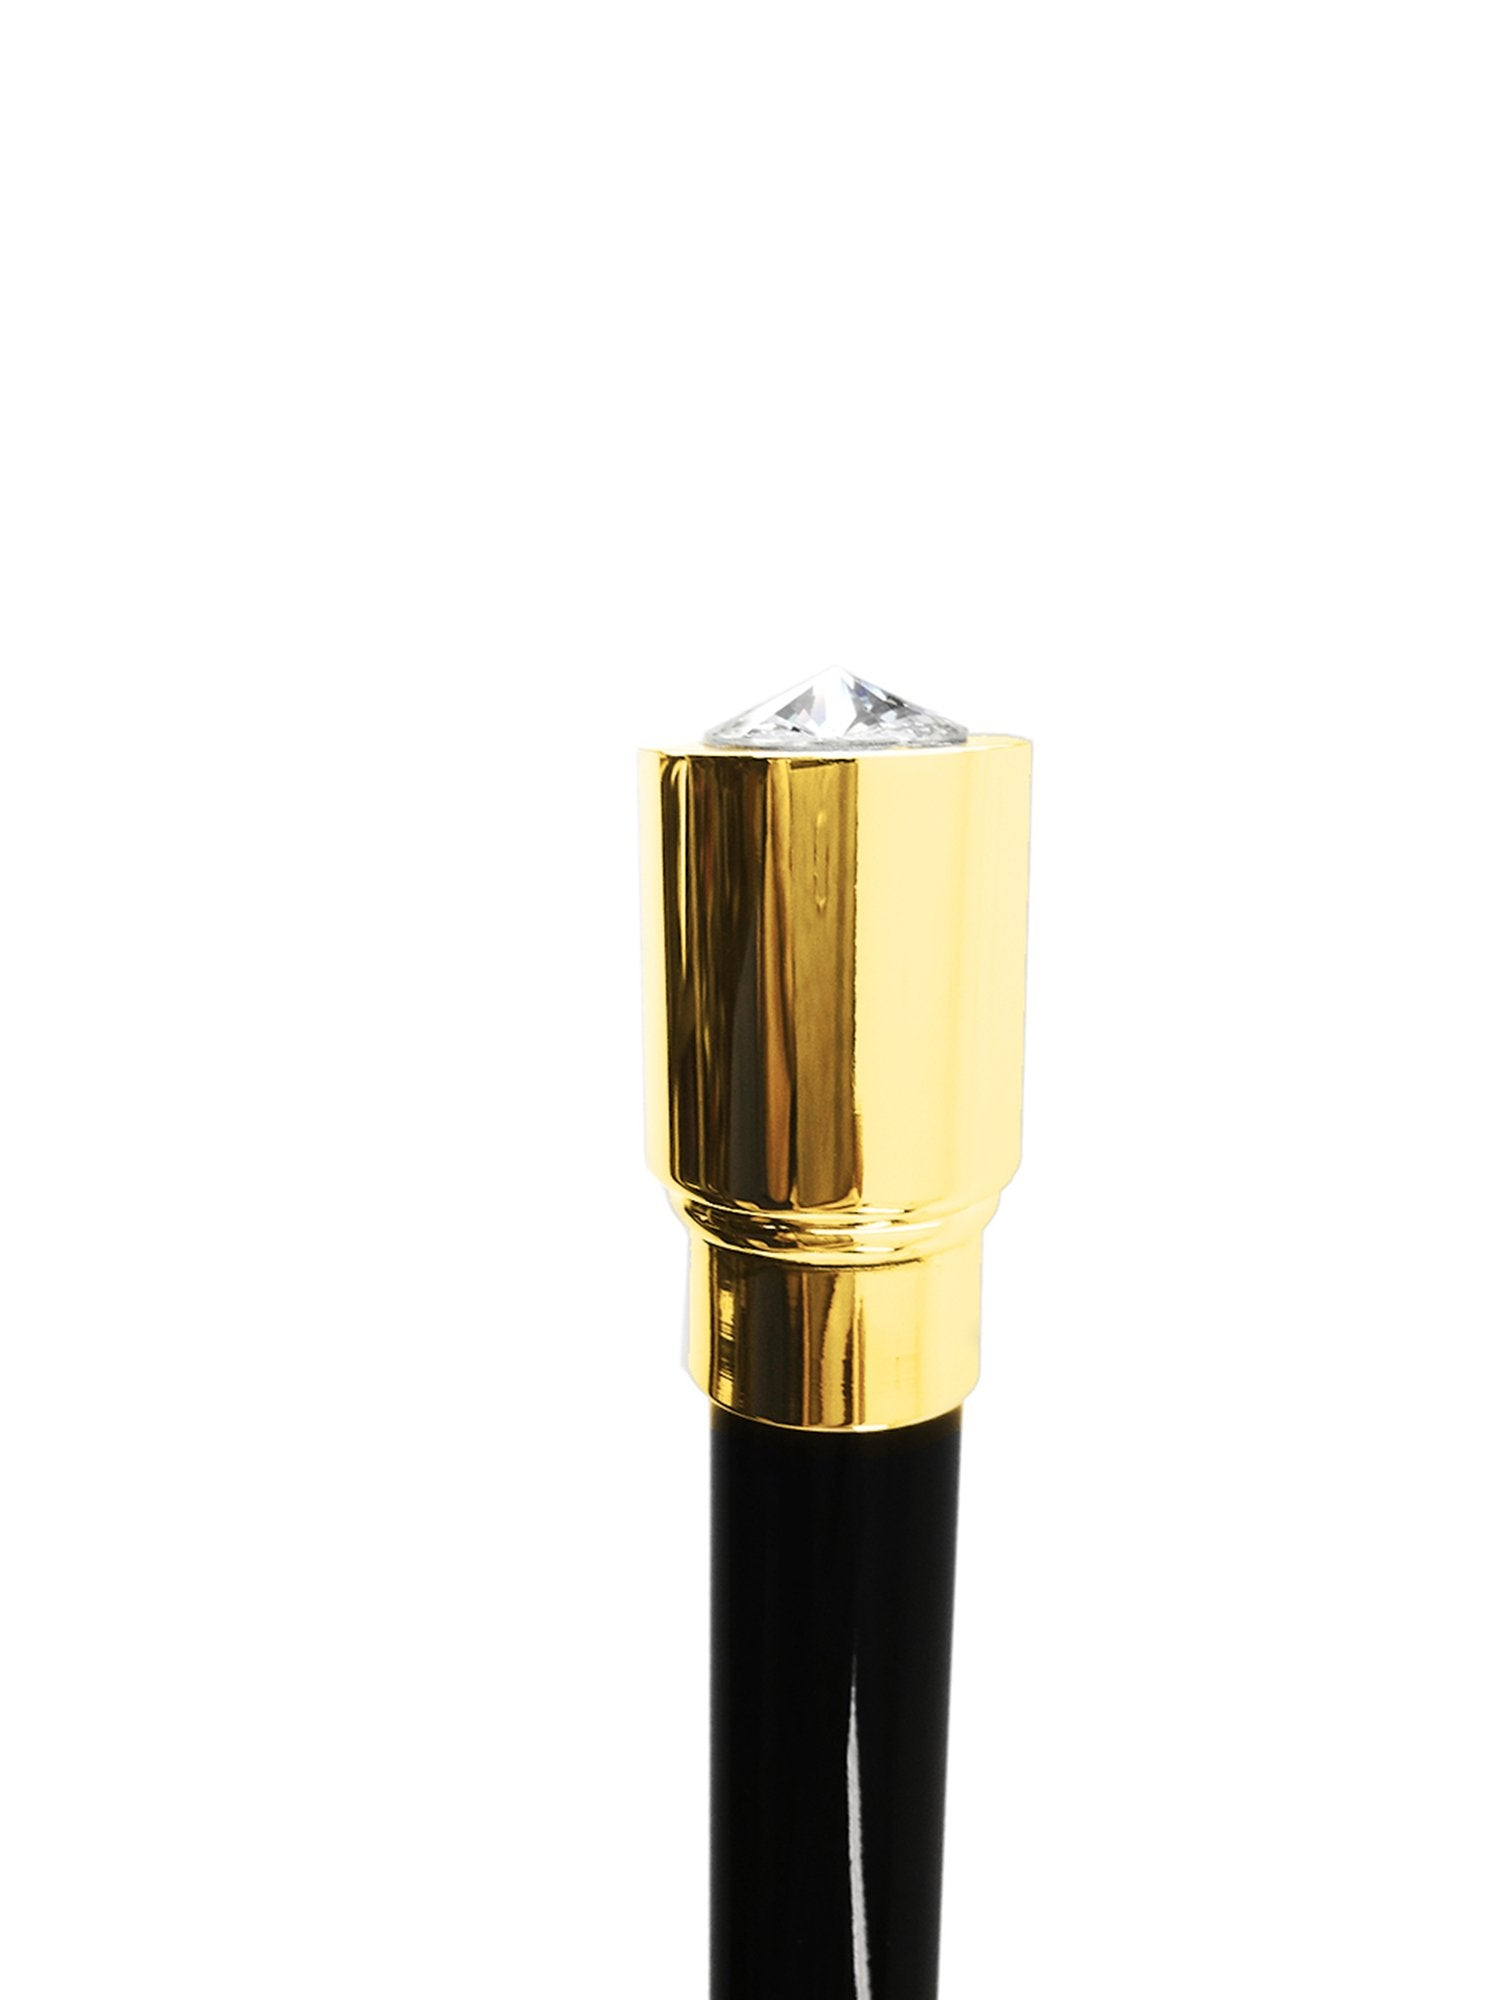 Luxurious 24K goldplated Walking Stick for Ceremonies